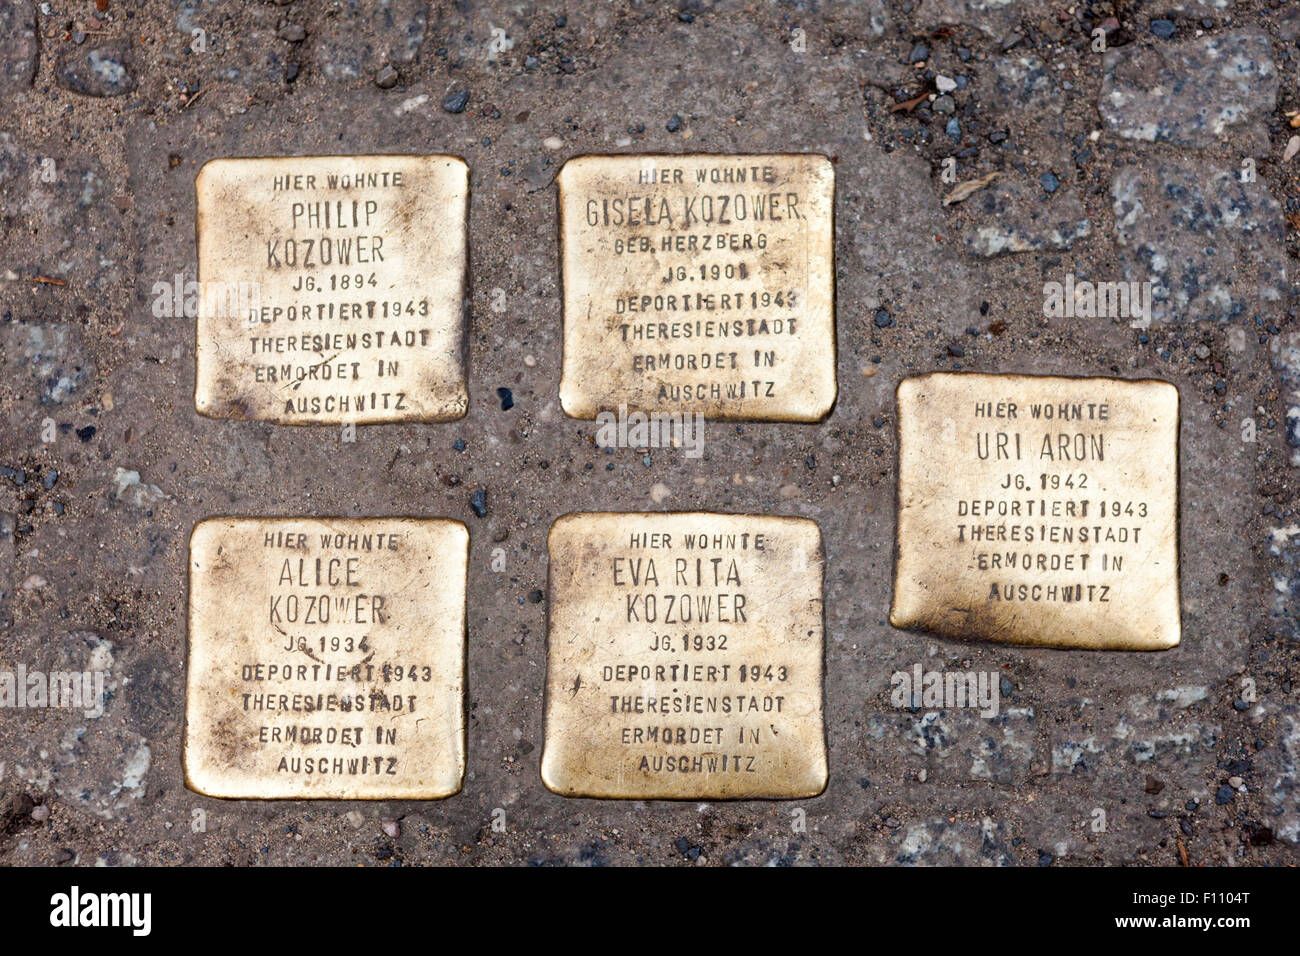 Five plaques in front of the Rosethalerstrasse house in Berlin from which these Jewish Holocaust victims were deported. - Stock Image